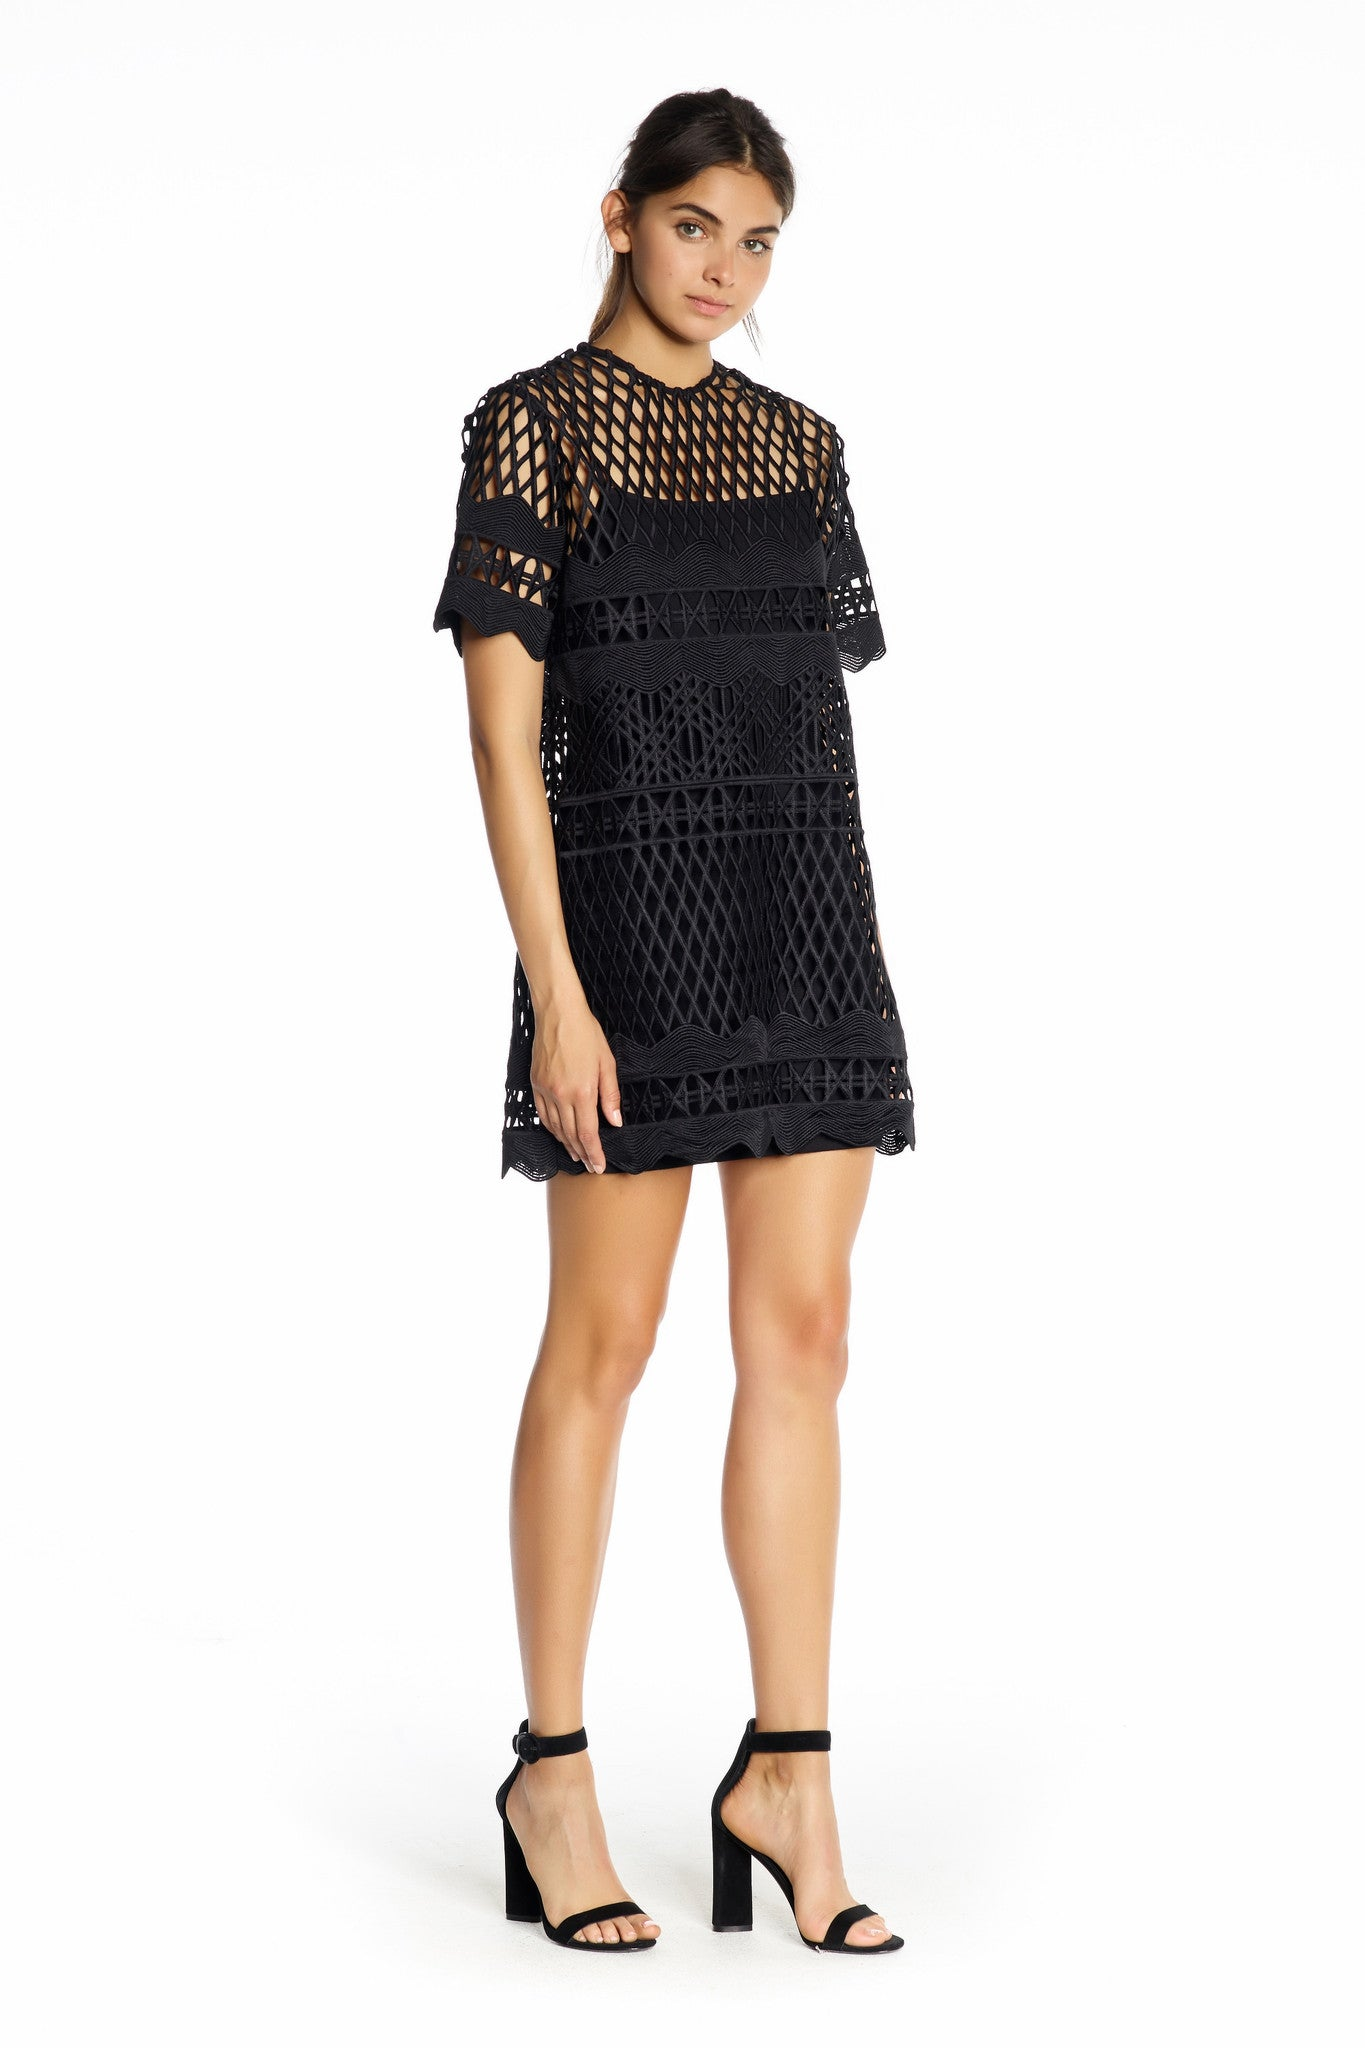 CROCHET A-LINE DRESS DRESSES by KENDALL + KYLIE